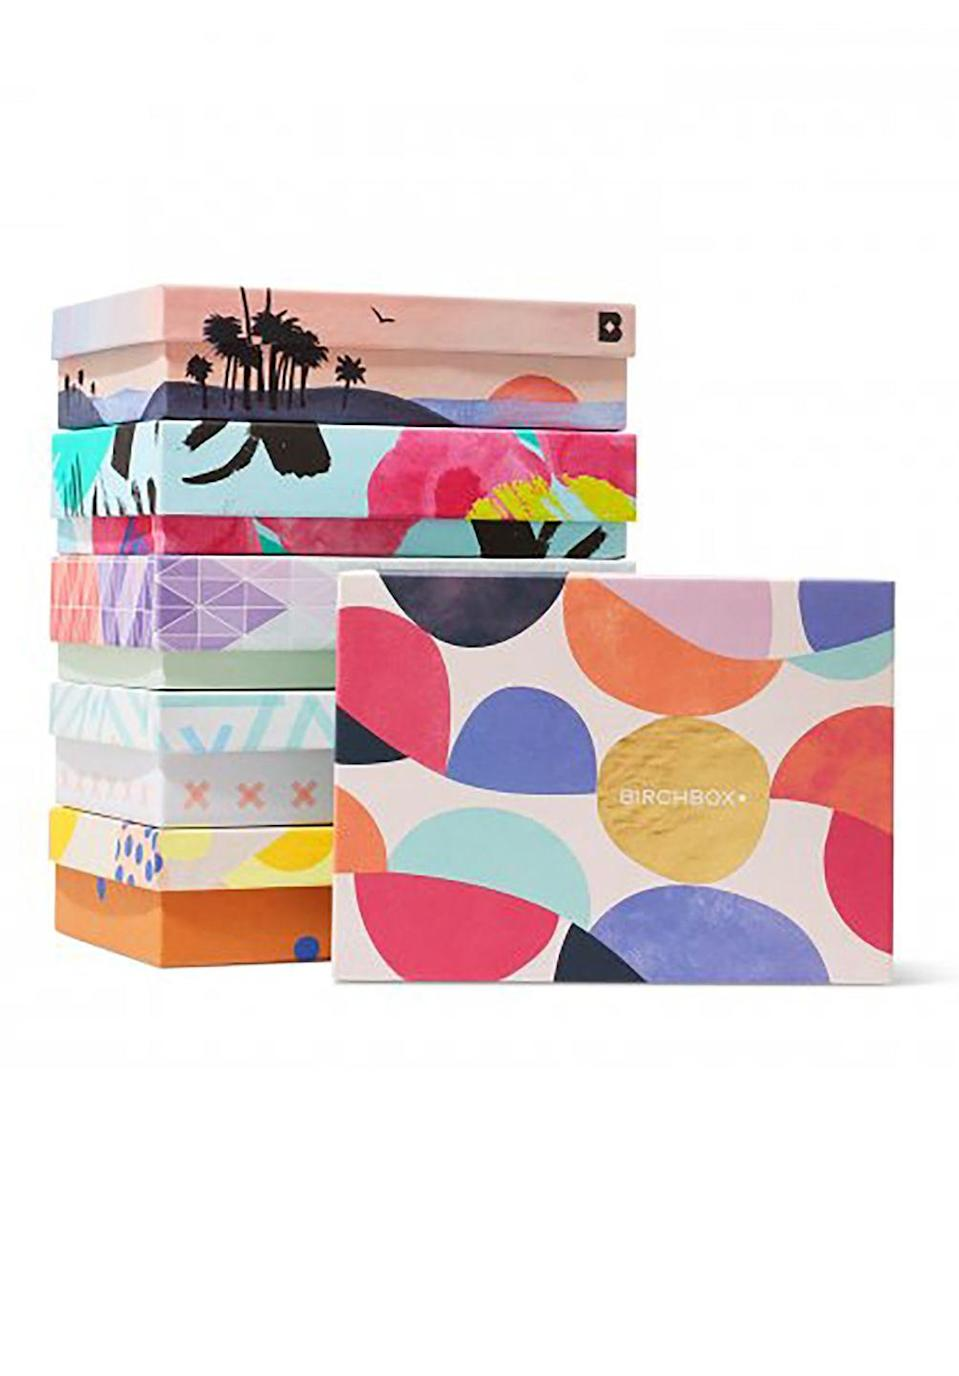 "<p>If she's a beauty product junkie, a Birchbox subscription is a great way for her to test out new items. </p><p> <a class=""link rapid-noclick-resp"" href=""https://go.redirectingat.com?id=74968X1596630&url=https%3A%2F%2Fwww.birchbox.com%2F&sref=https%3A%2F%2Fwww.countryliving.com%2Fshopping%2Fgifts%2Fnews%2Fg4835%2Fbirthday-gifts-for-mom%2F"" rel=""nofollow noopener"" target=""_blank"" data-ylk=""slk:SHOP NOW"">SHOP NOW</a></p>"